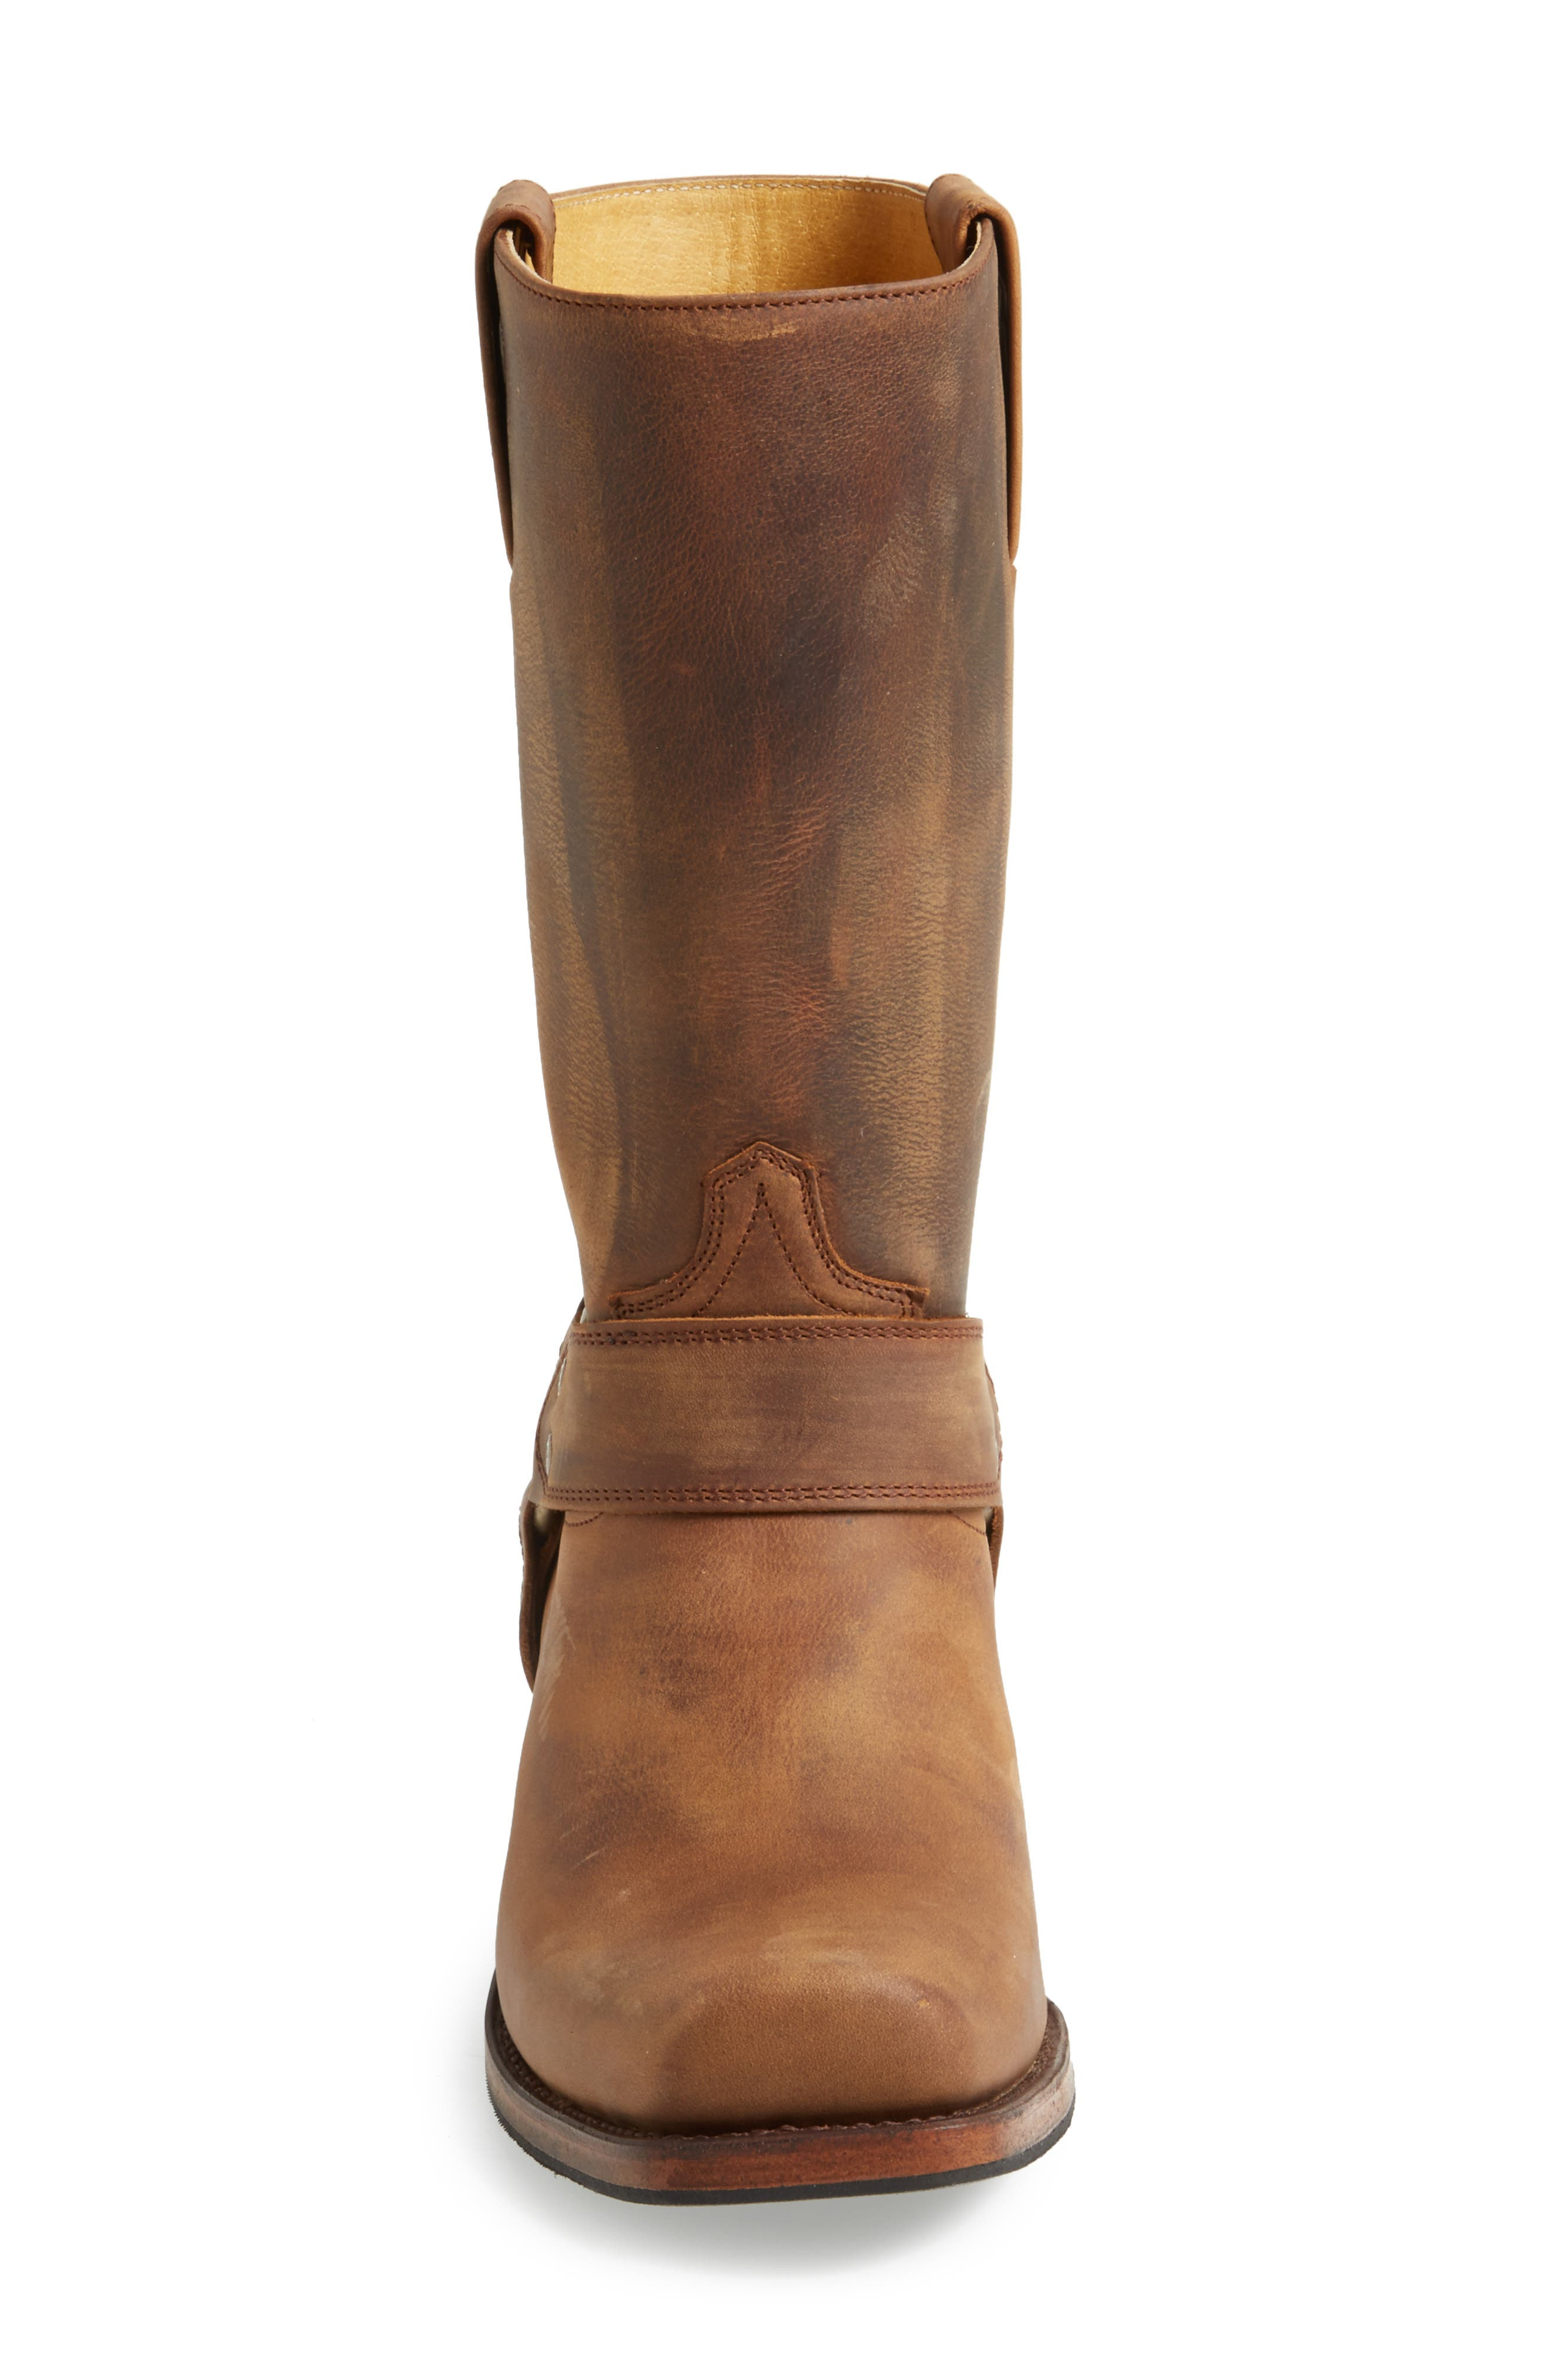 Boots Tall Harness Boot,                             Alternate thumbnail 4, color,                             TAN